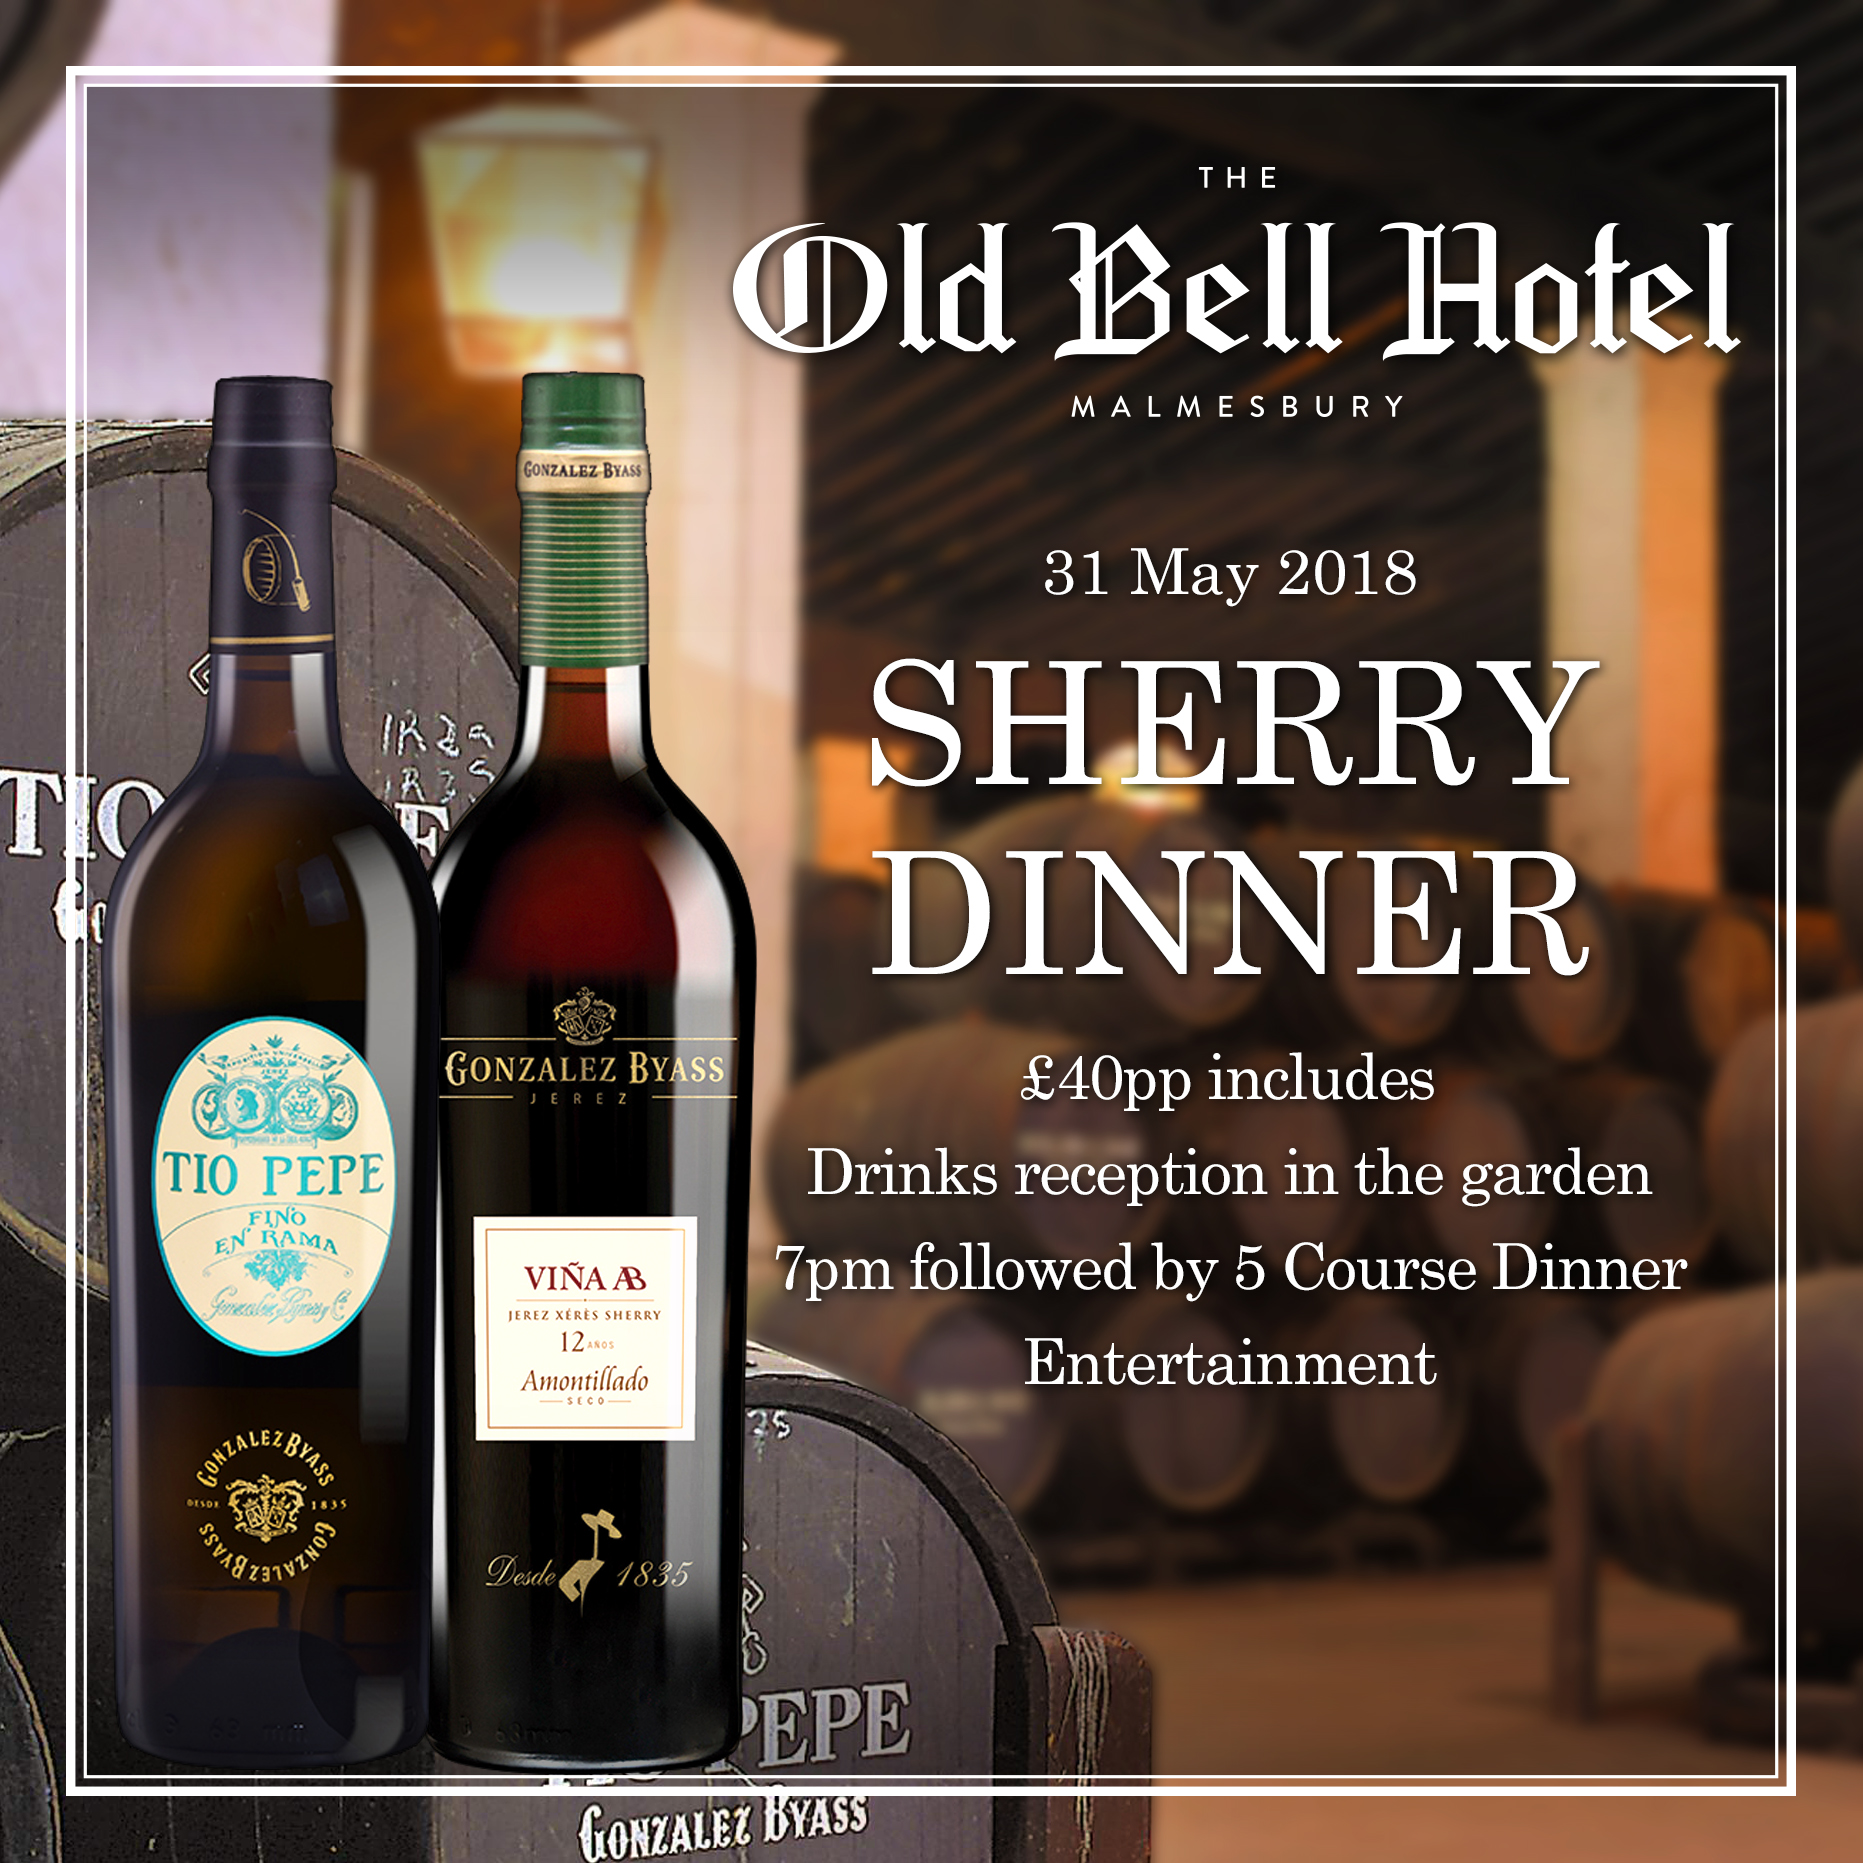 The Old Bell Hotel's Sherry Dinner